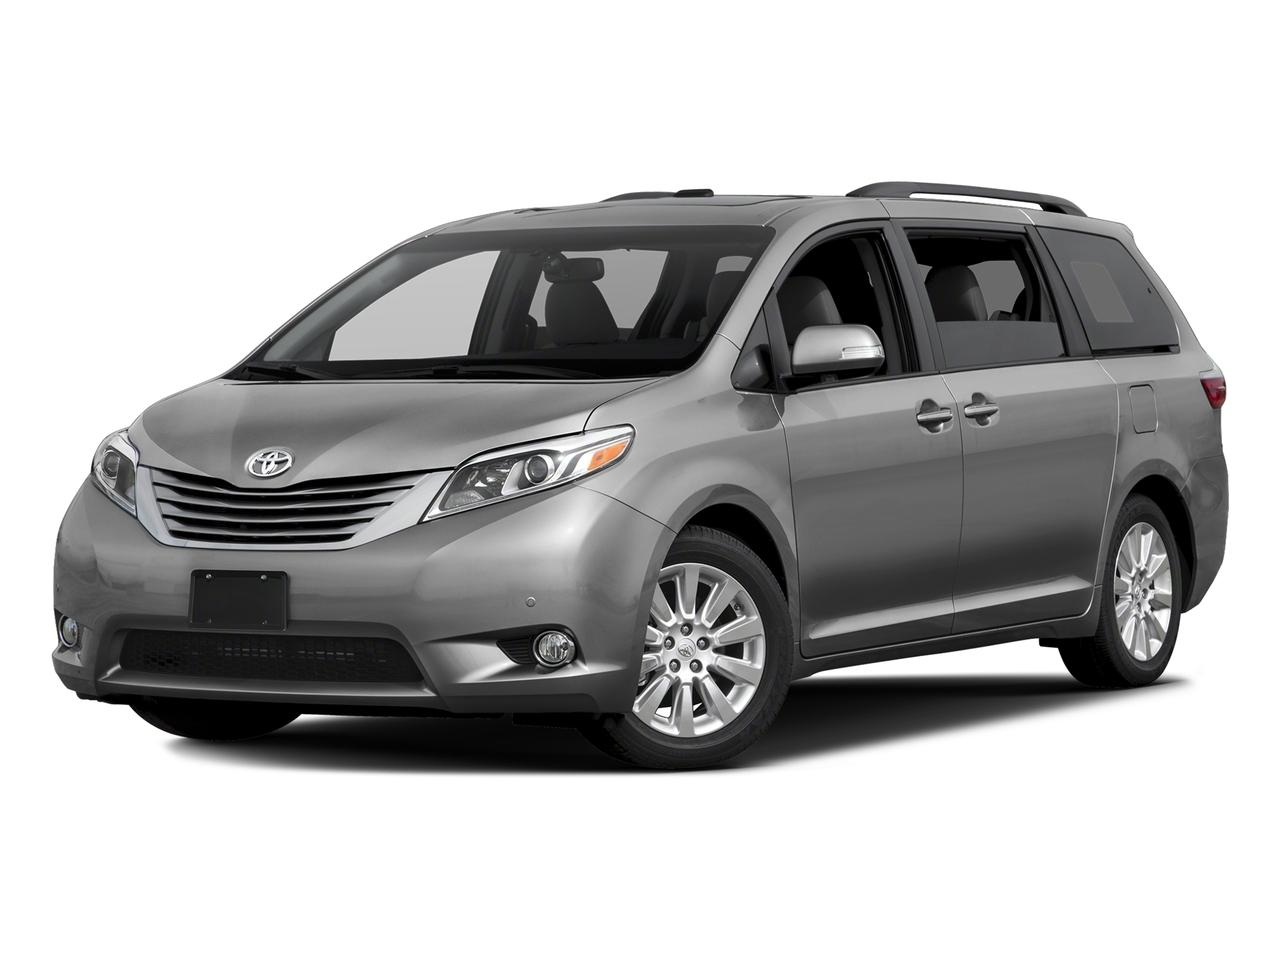 2017 Toyota Sienna Vehicle Photo in Danbury, CT 06810